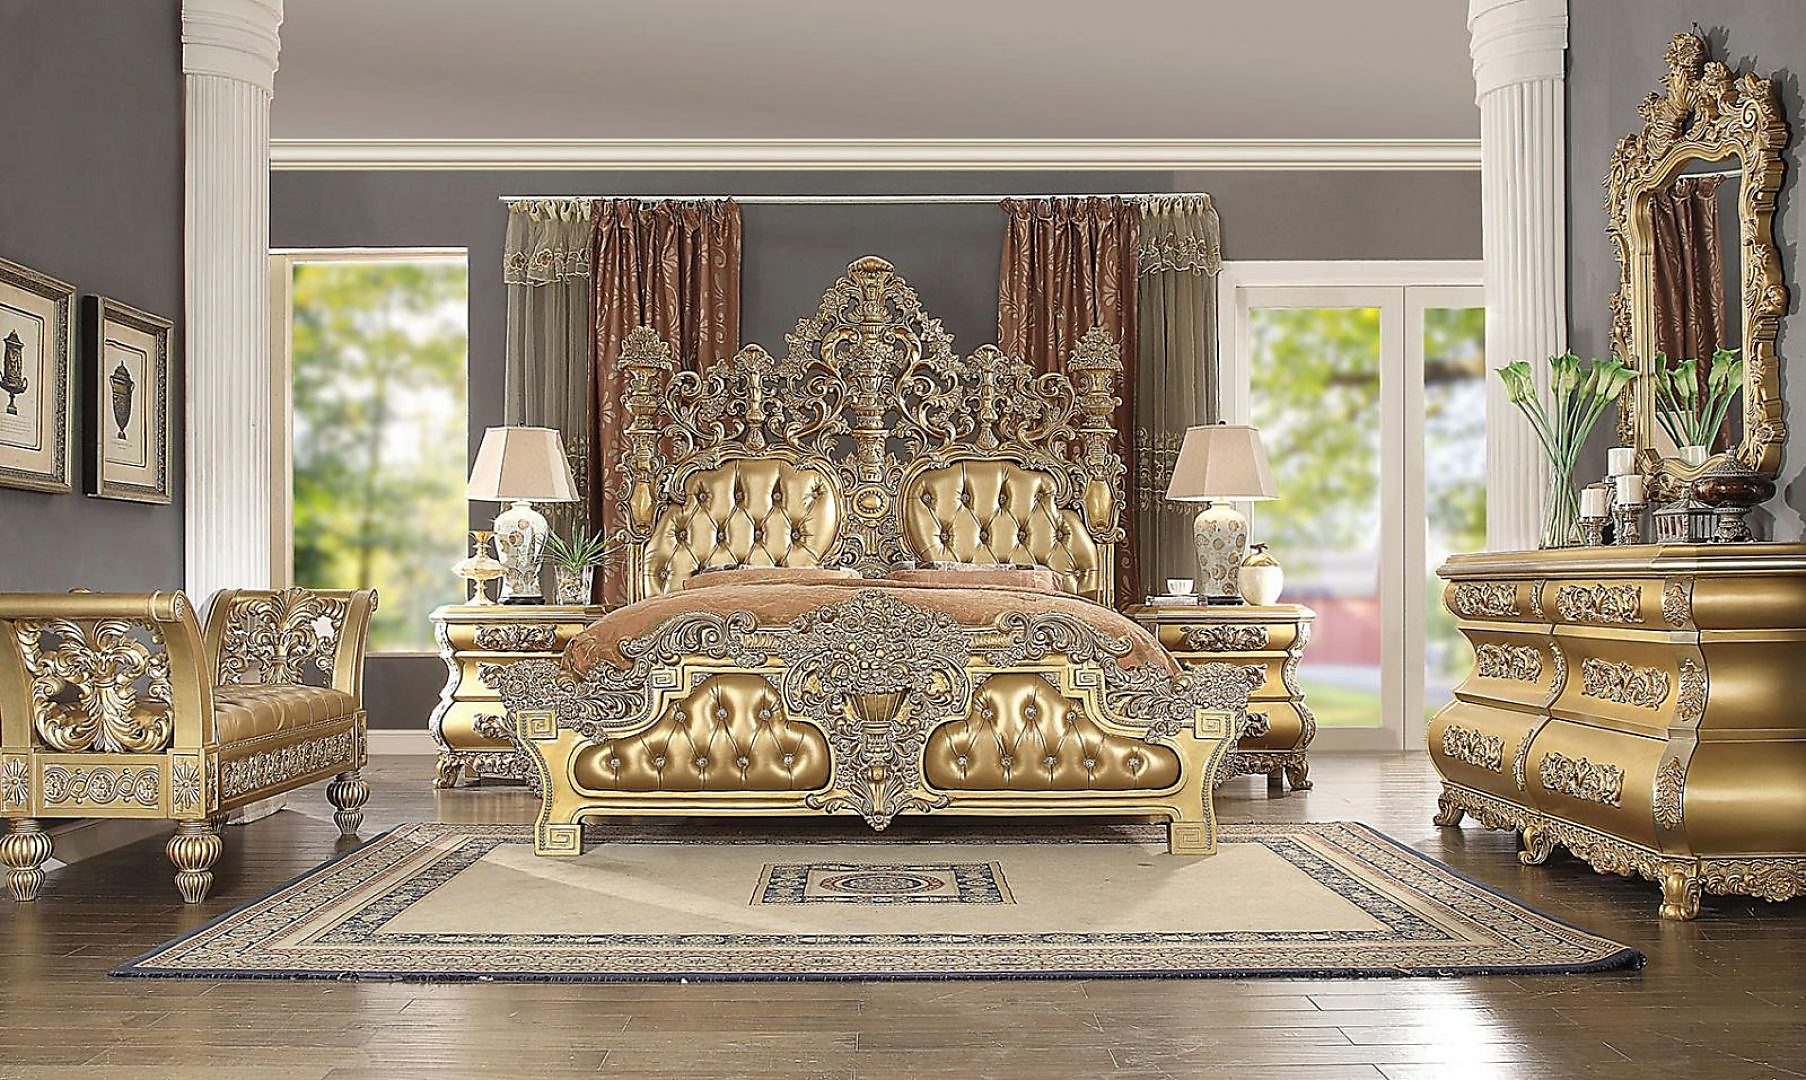 Traditional HD-8016 Gilded California King Bedroom Set 6 Pcs by Homey Design